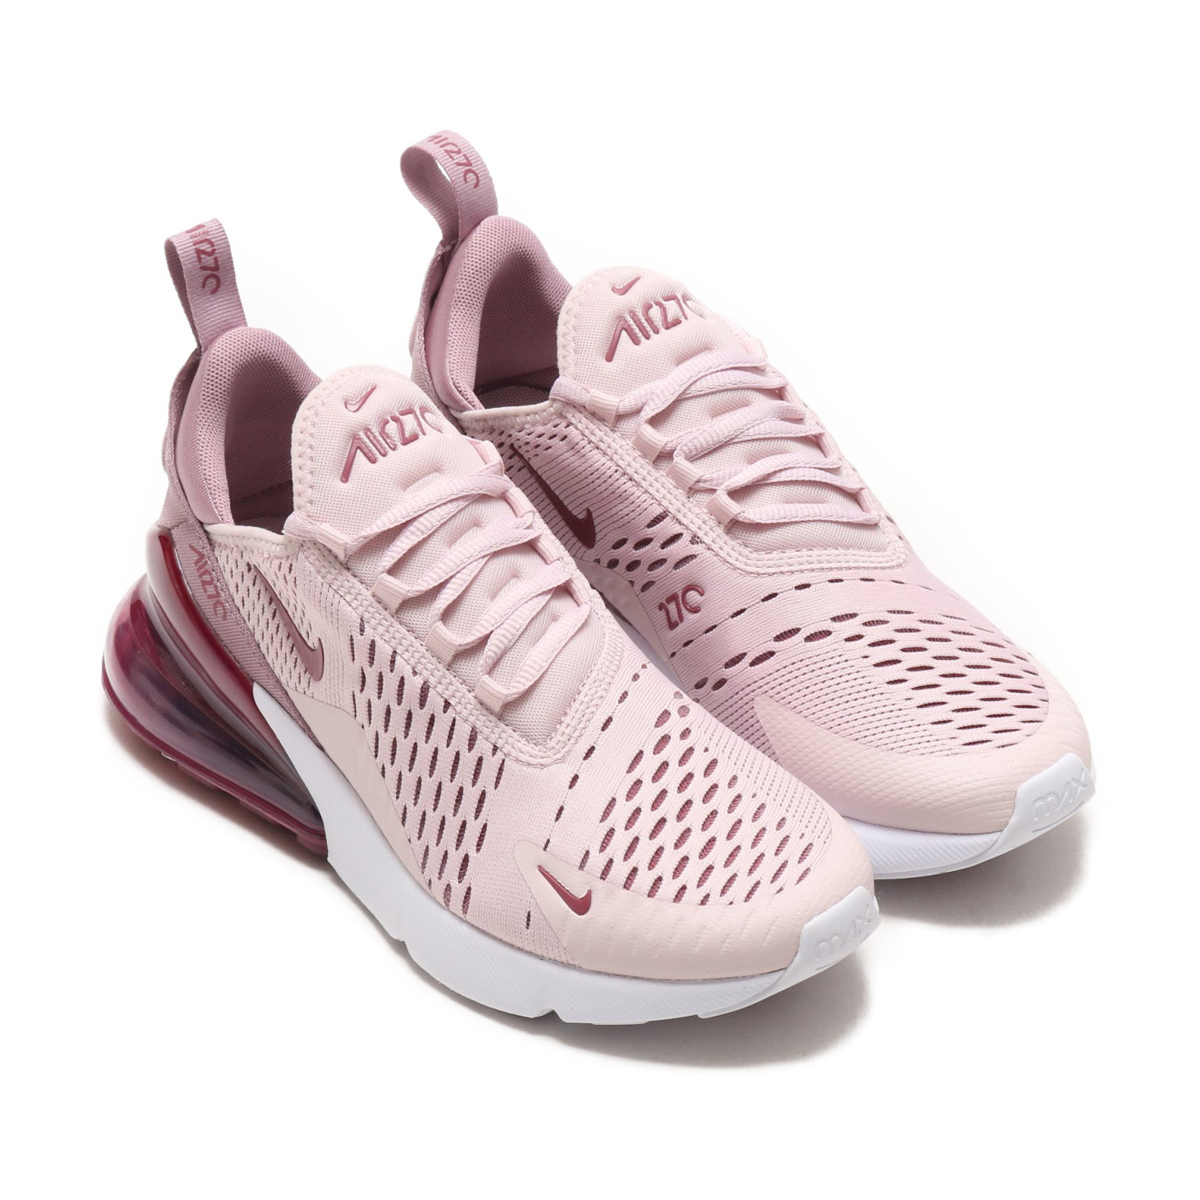 254f1b8d09ca8 NIKE W AIR MAX 270 (Nike women Air Max 270) (BARELY ROSE VINTAGE  WINE-ELEMENTAL ROSE) 18SU-S